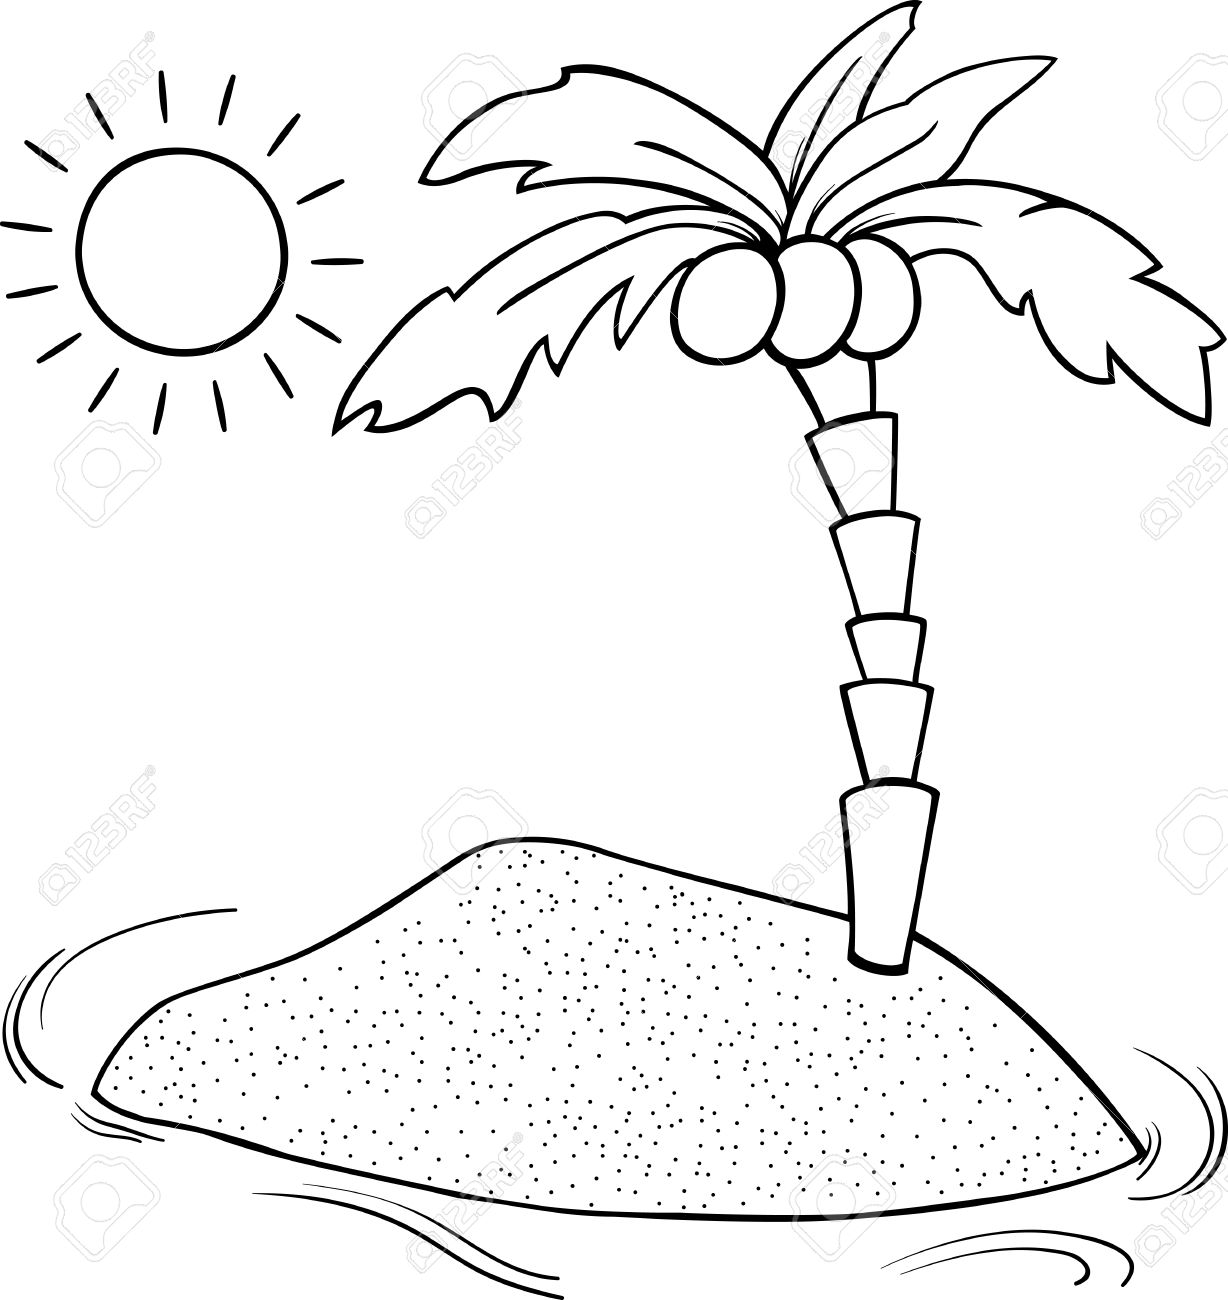 Black And White Cartoon Illustration Of Desert Island With Coconut ...